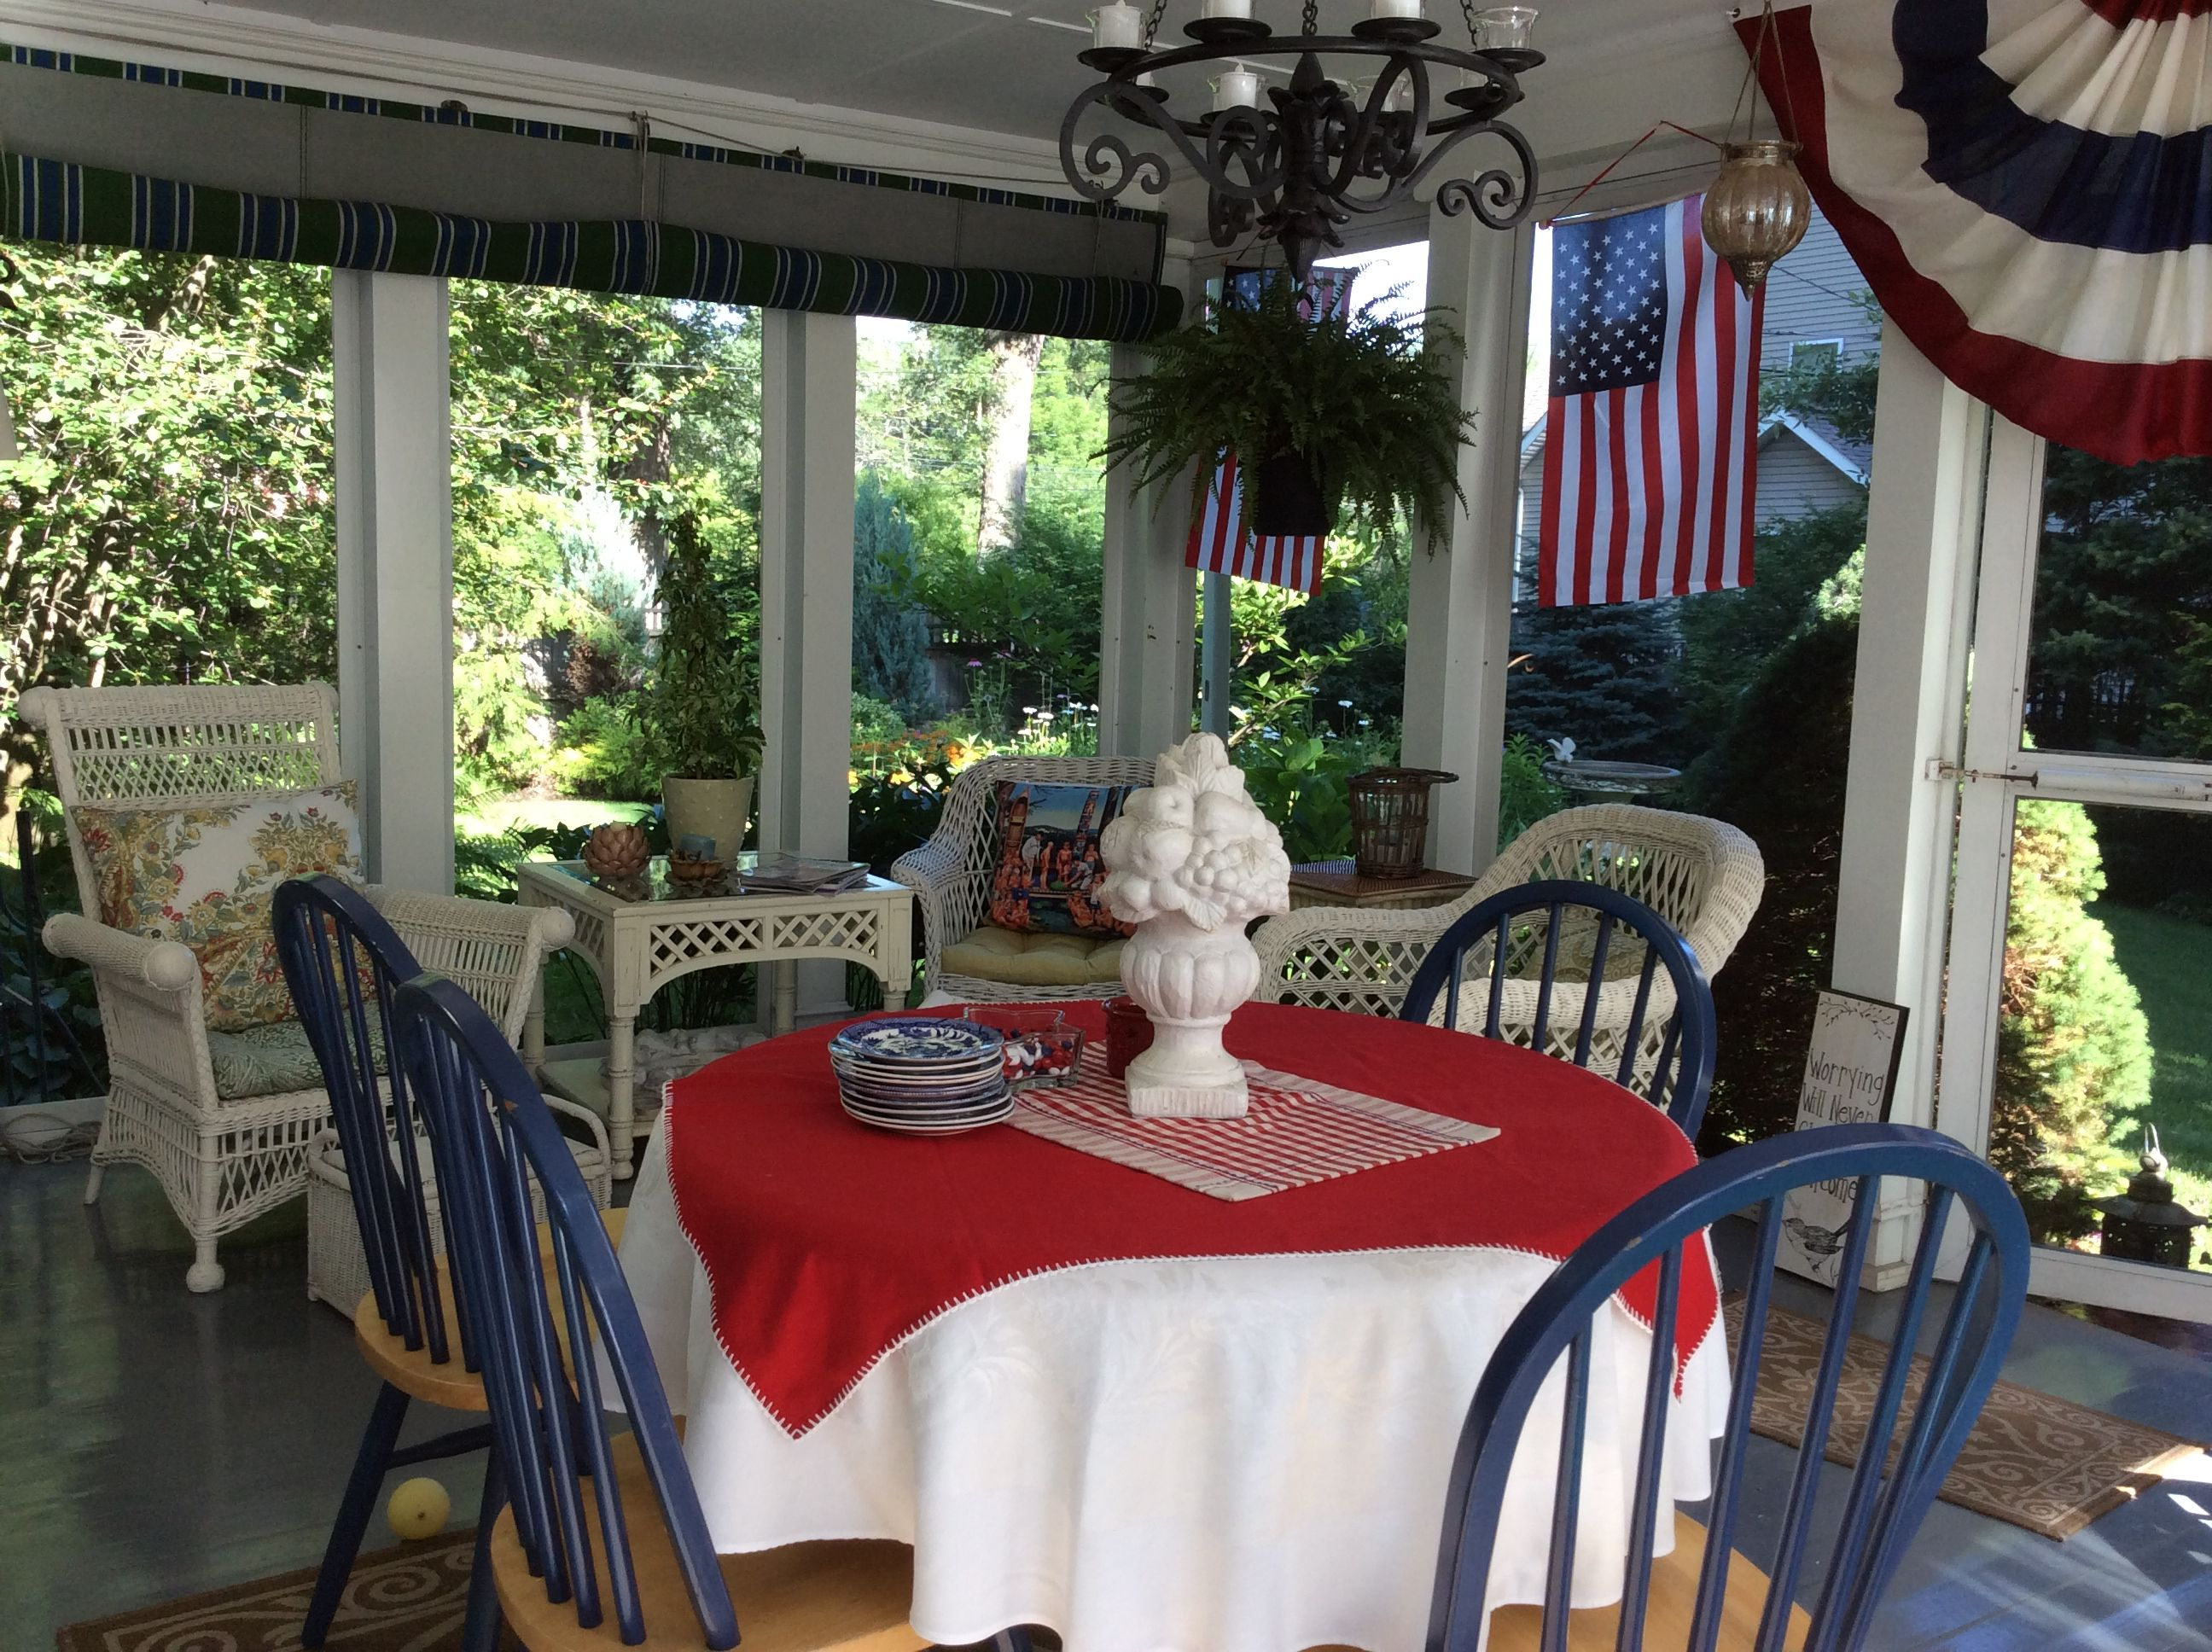 Pin by Pam Hart on 4th of July | Home decor, Decor, Table ...